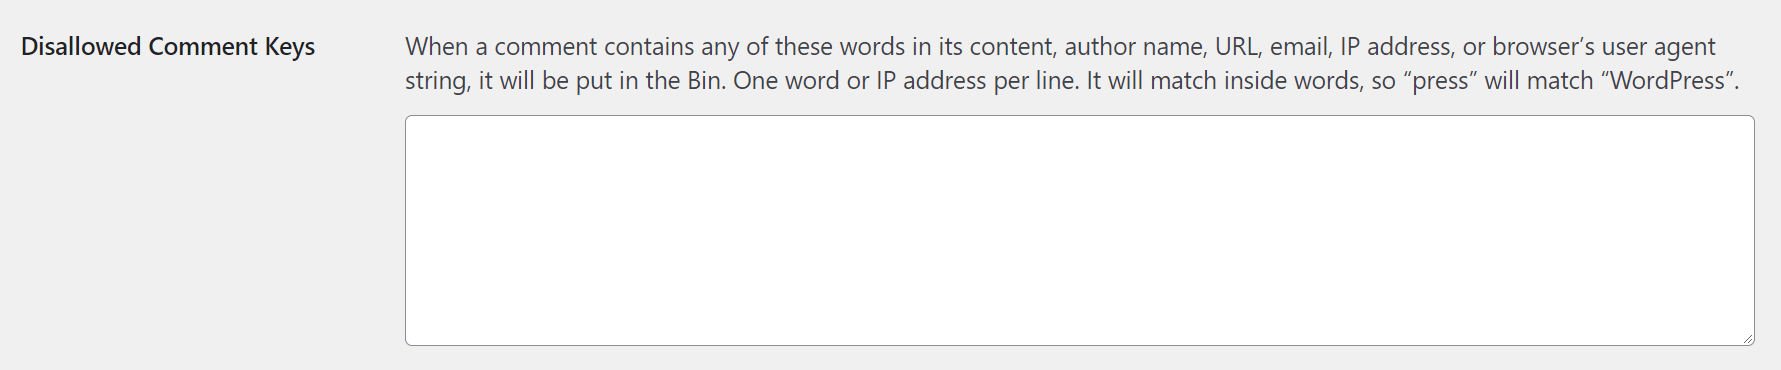 An image of the native WordPress blacklist to combat spam.